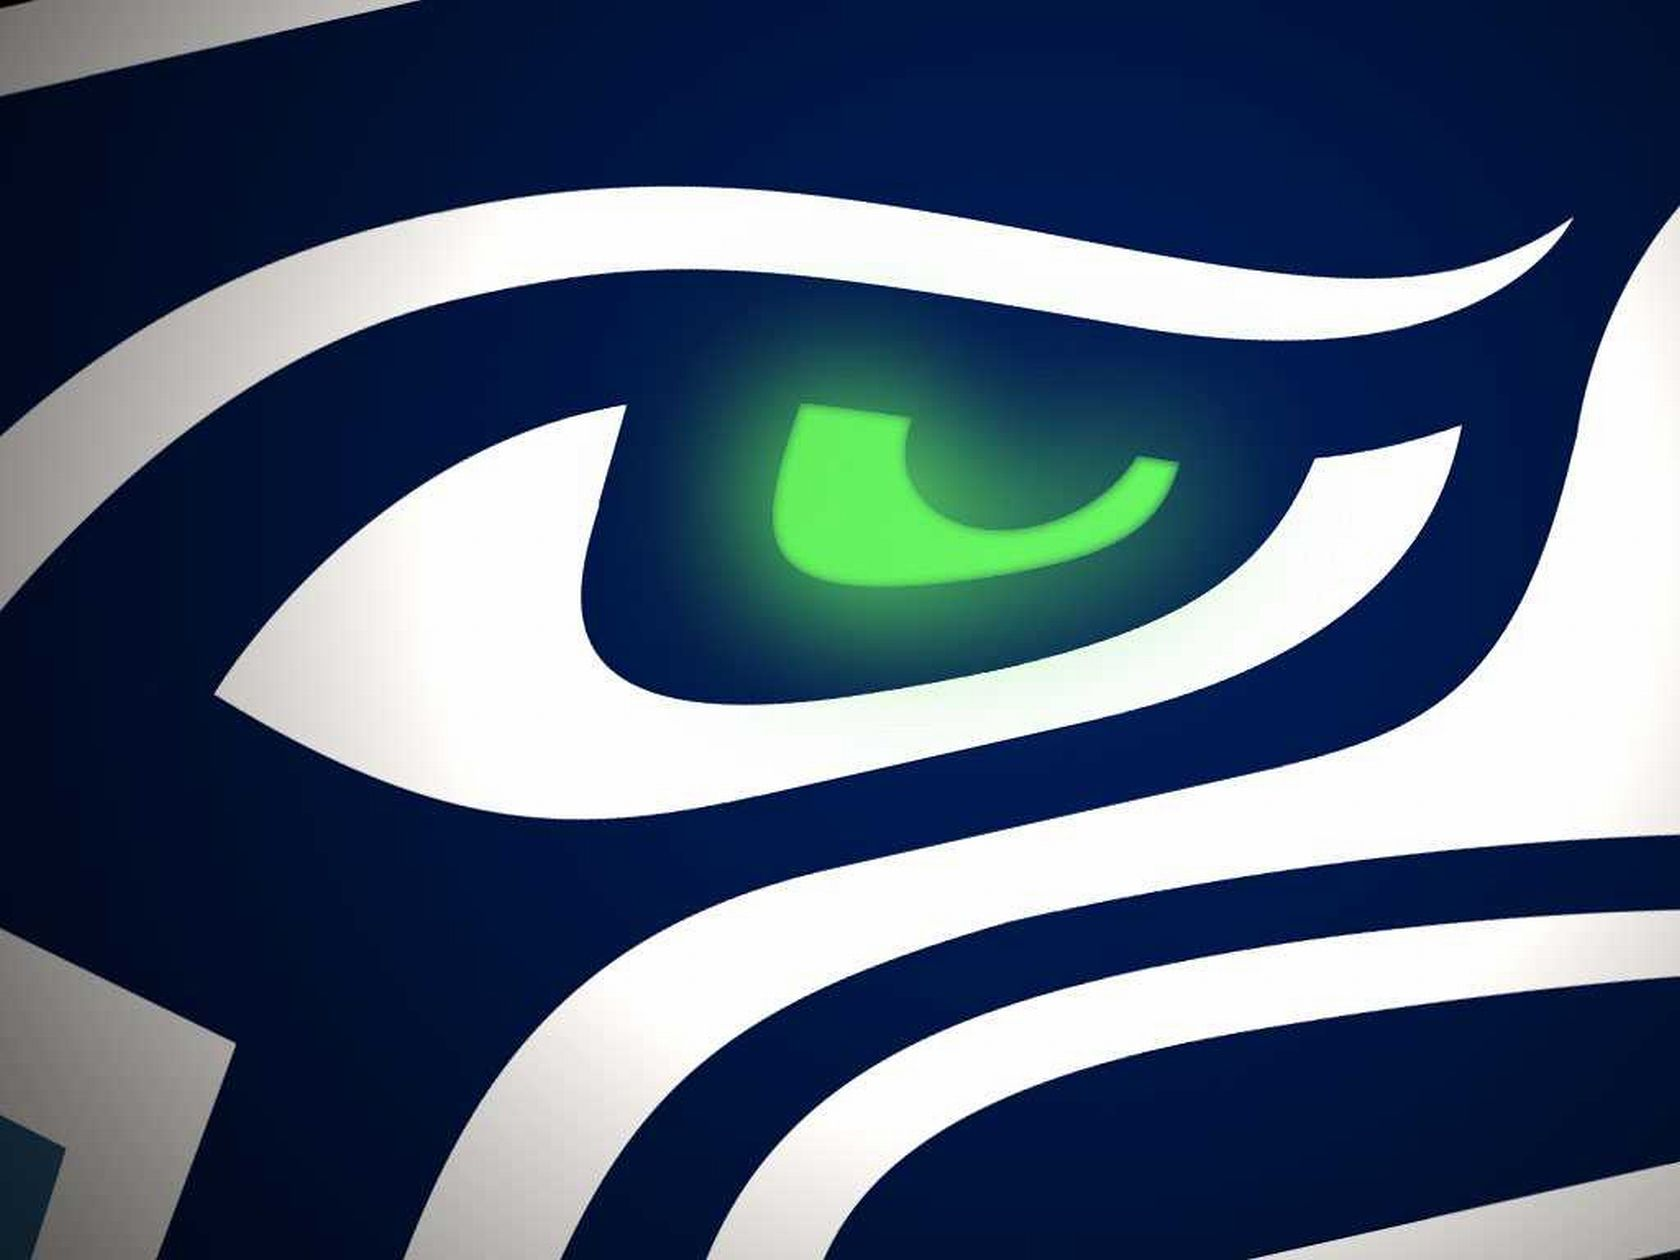 Seattle Seahawks Fan Gets Team Logo on Prosthetic